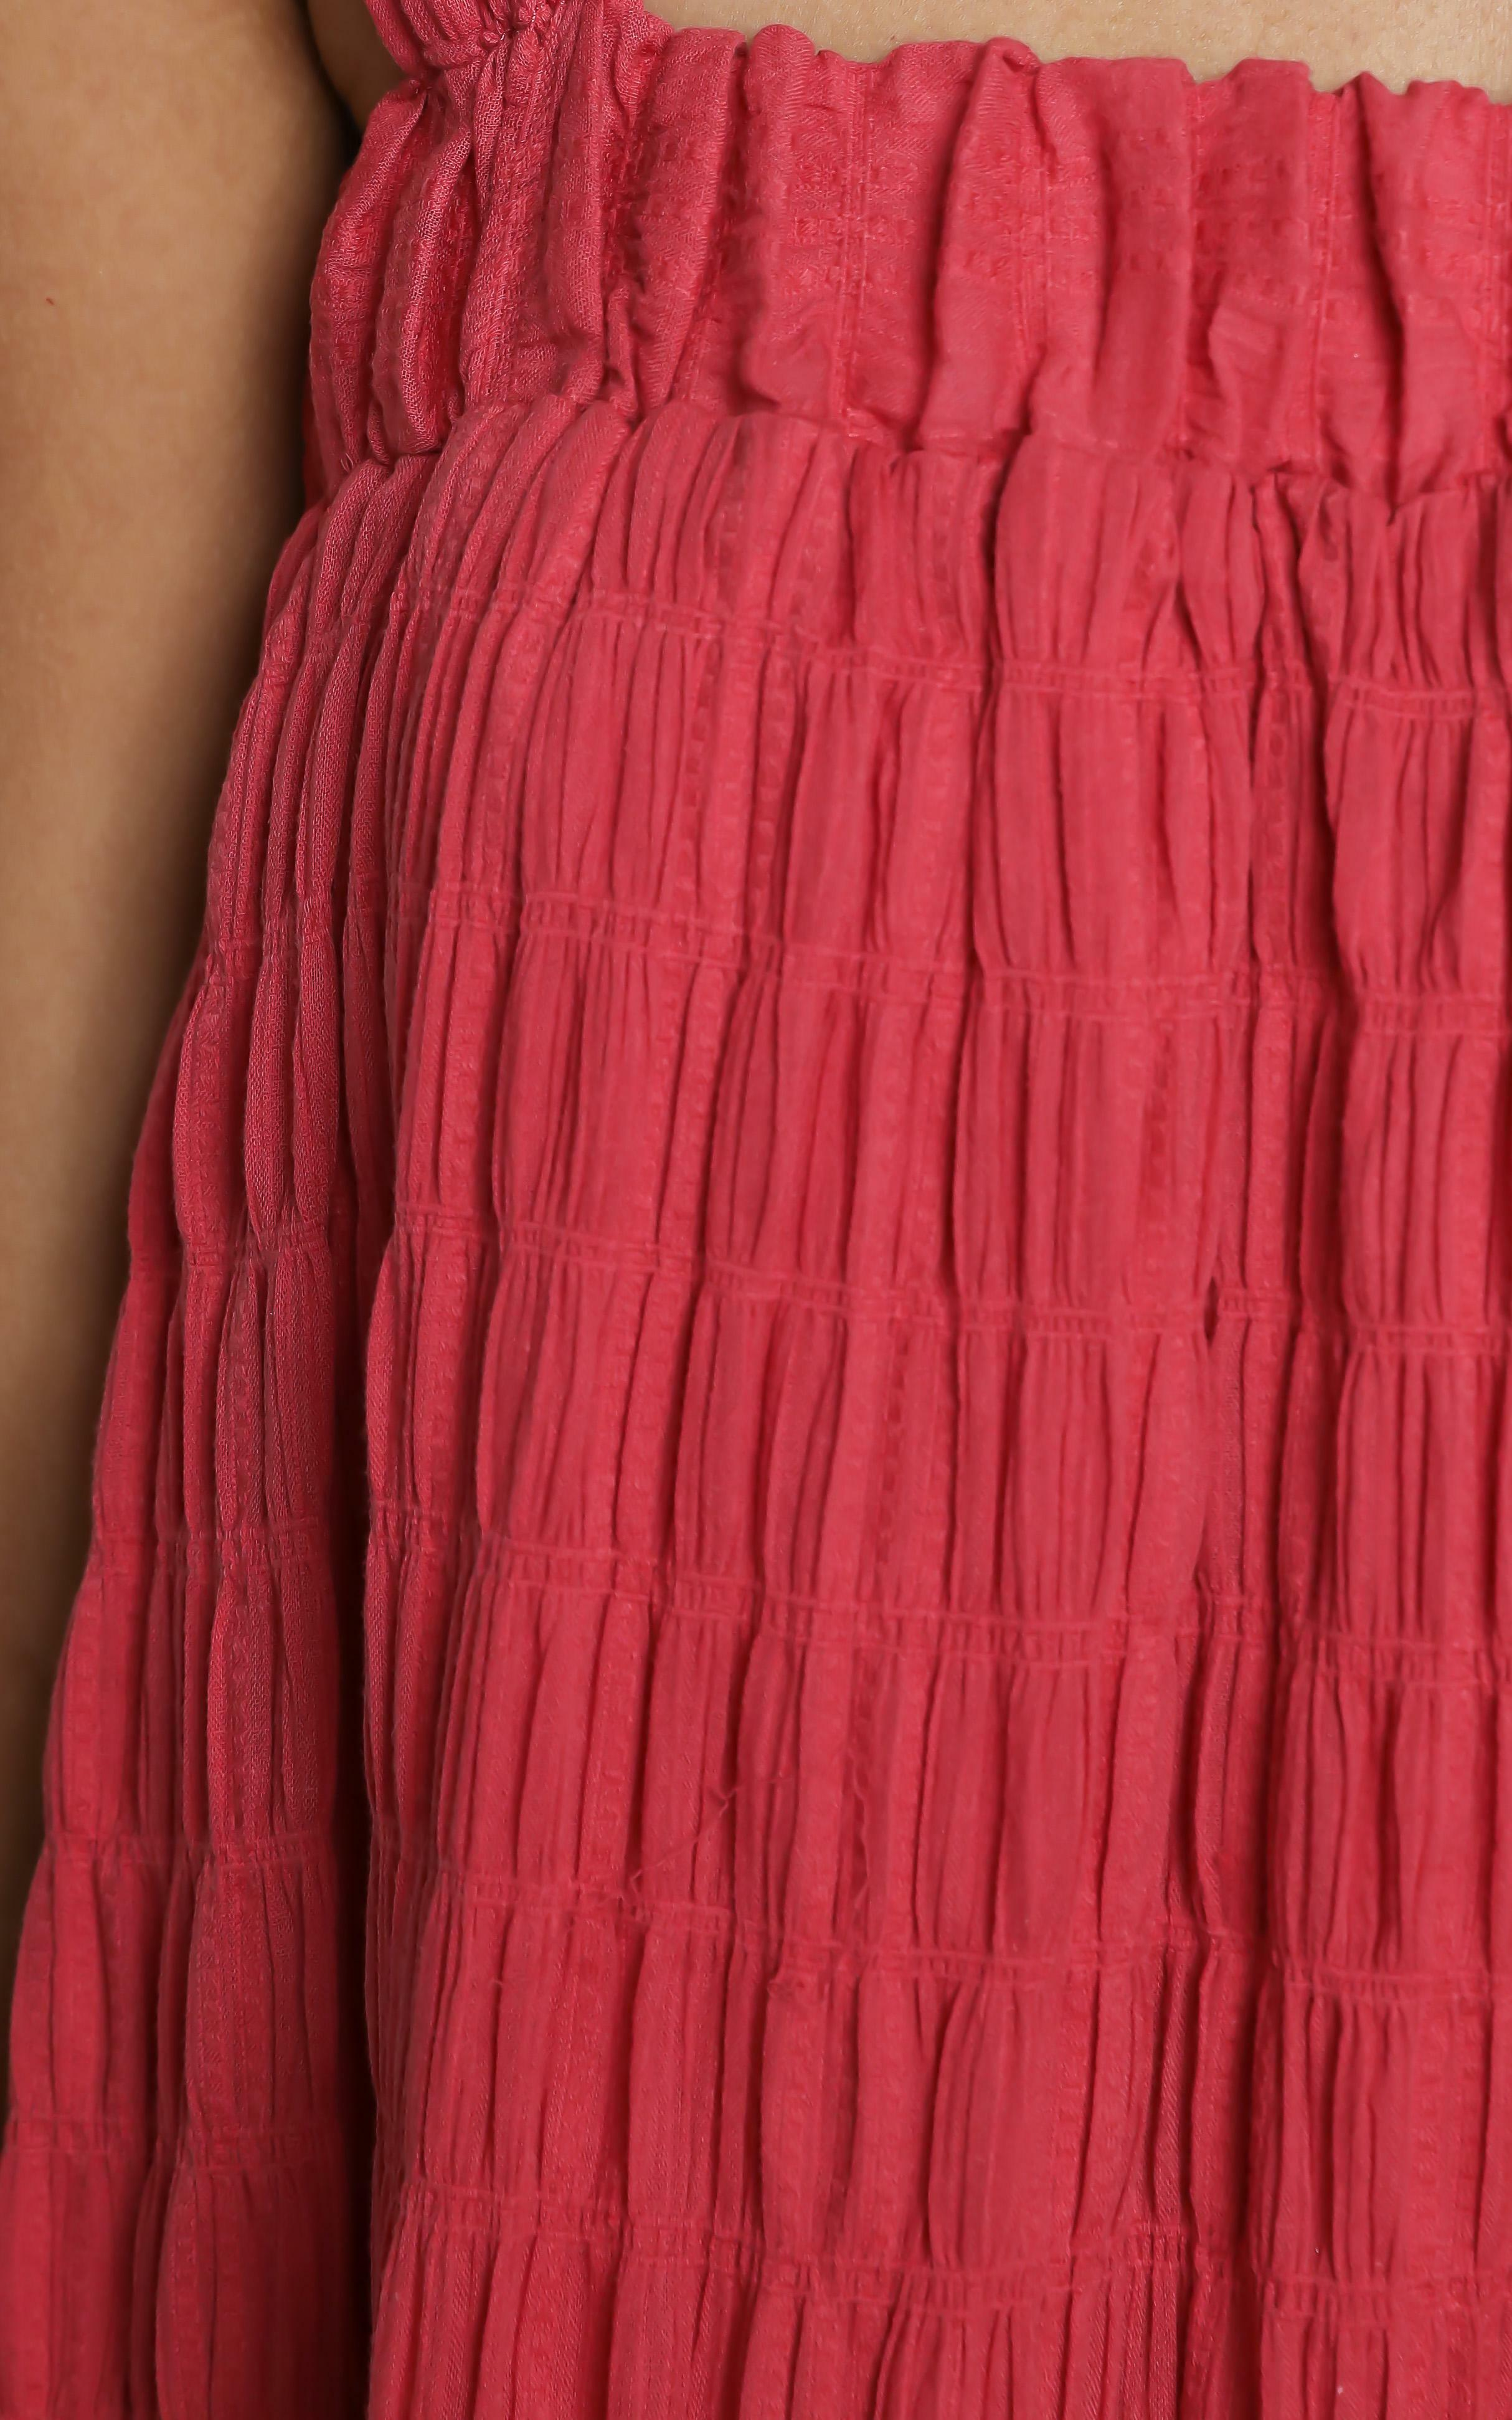 Amaryllis Dress in Watermelon - 14 (XL), Pink, hi-res image number null